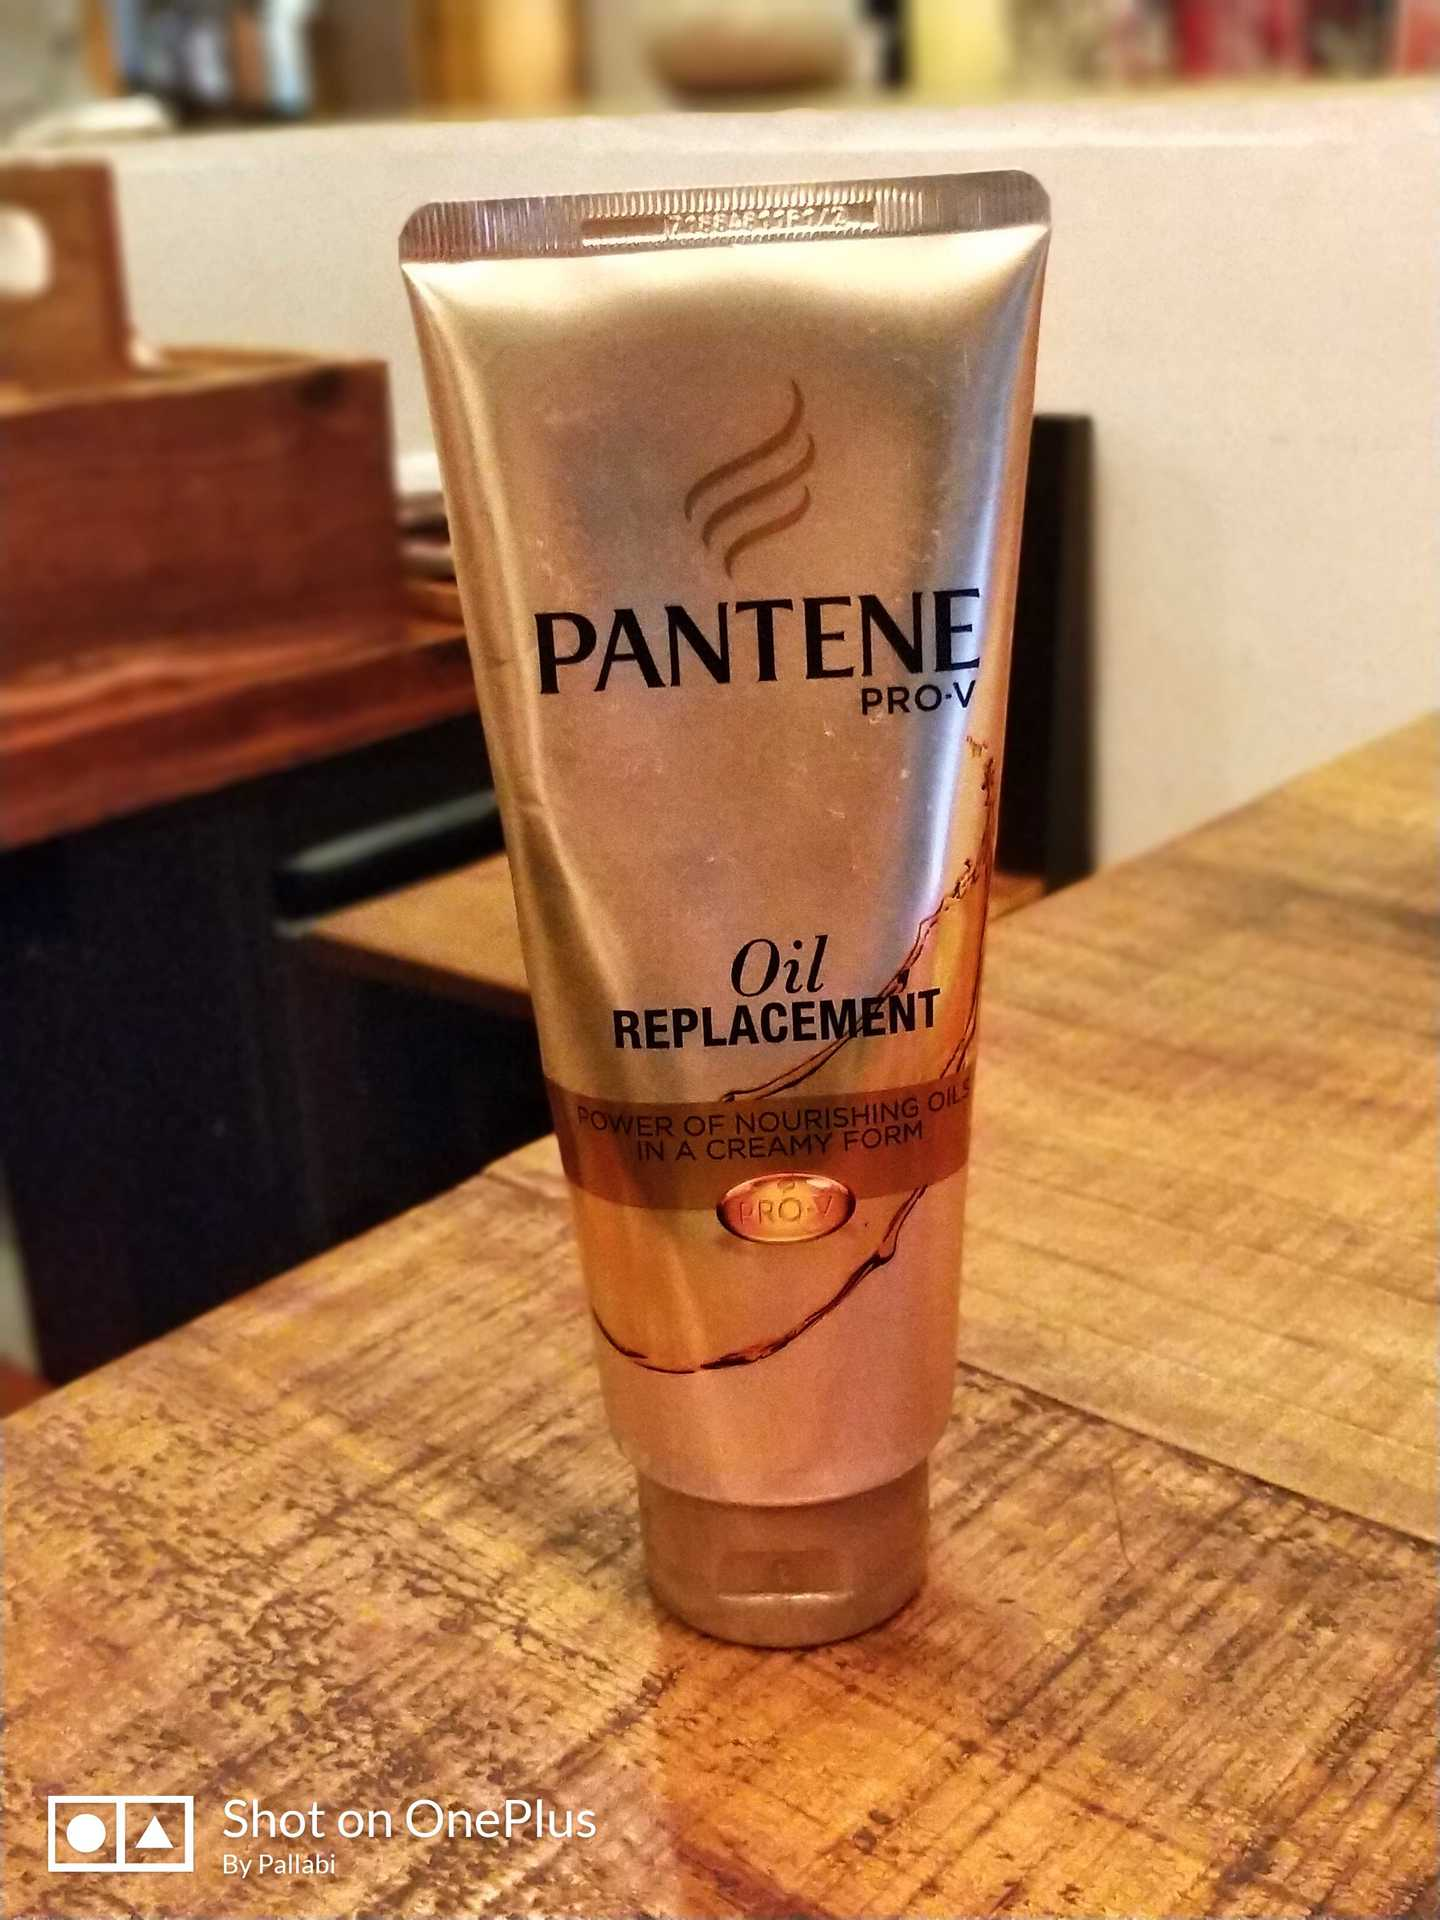 All about the new Pantene Oil Replacement  image